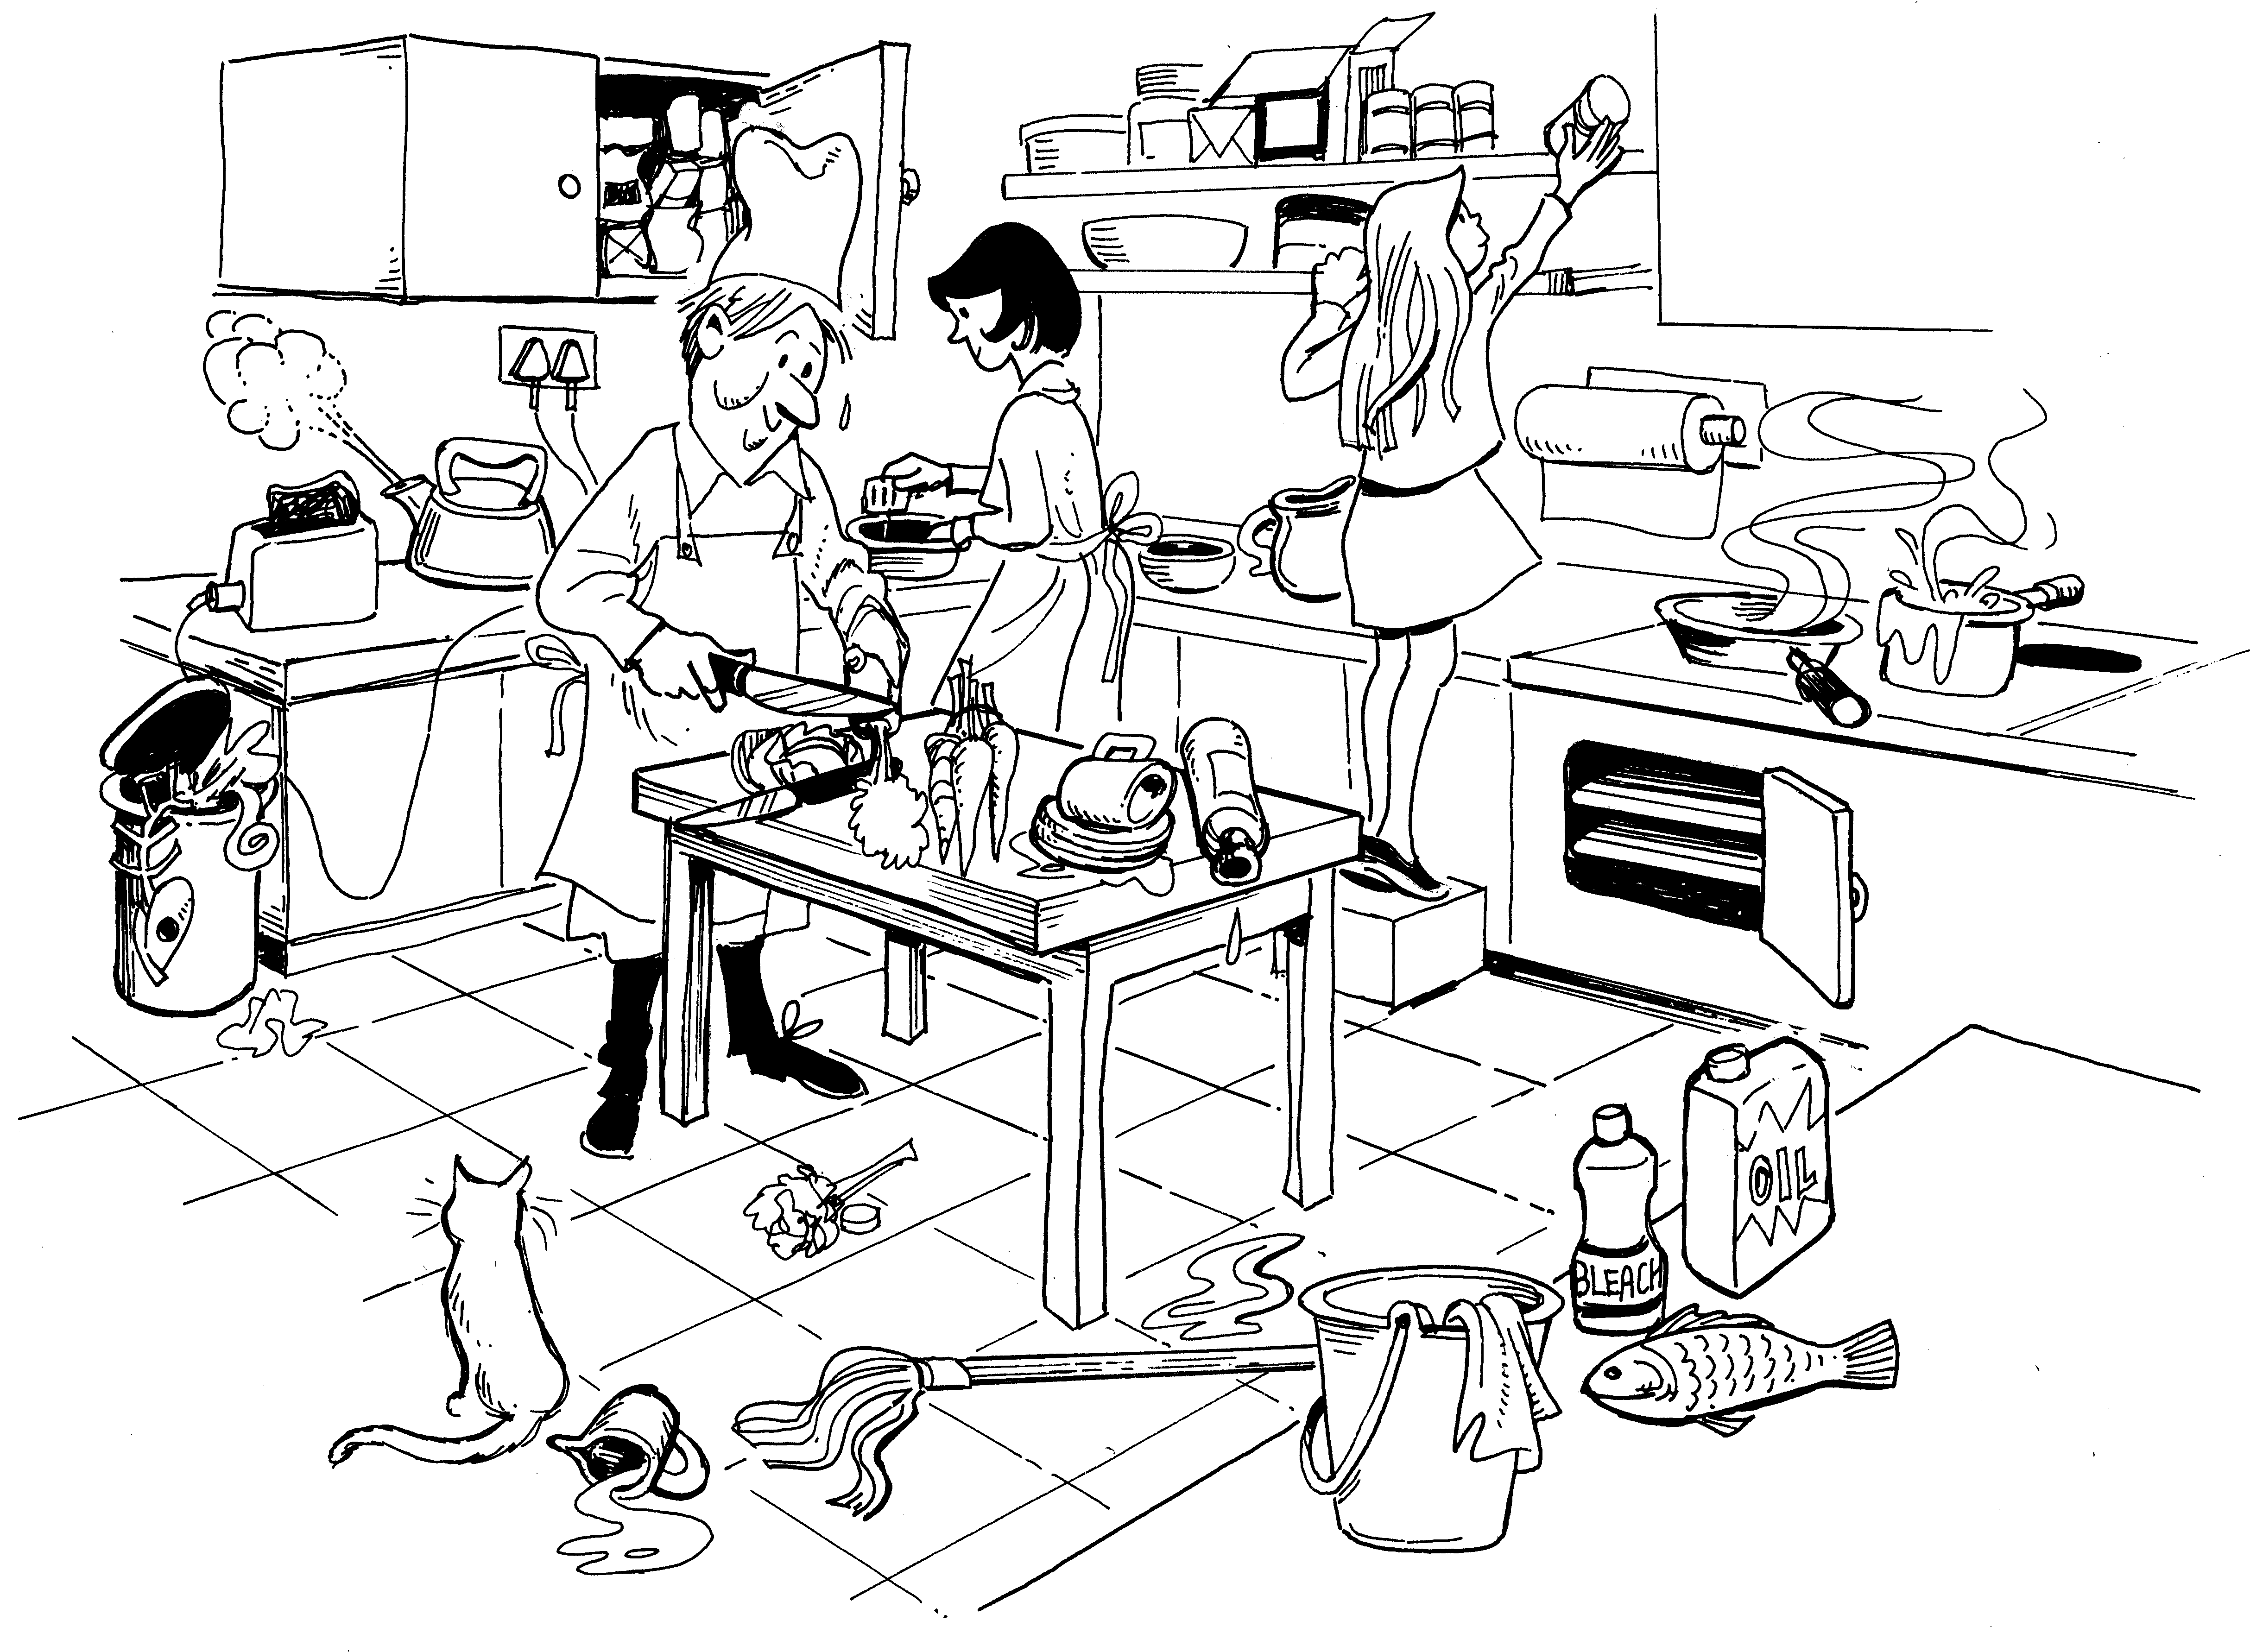 Safety and first aid in the kitchen